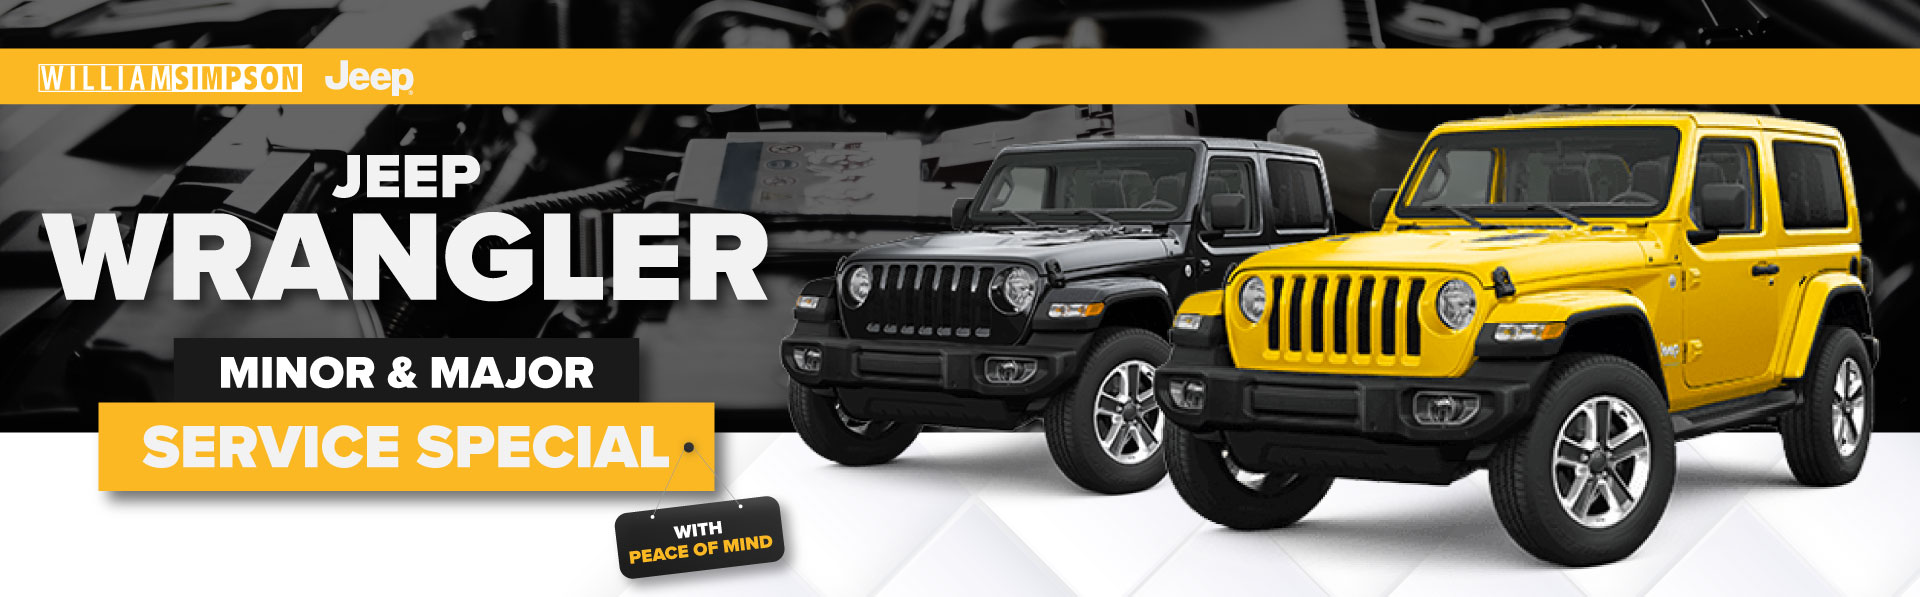 jeep-wrangler-major-and-minor-service-special